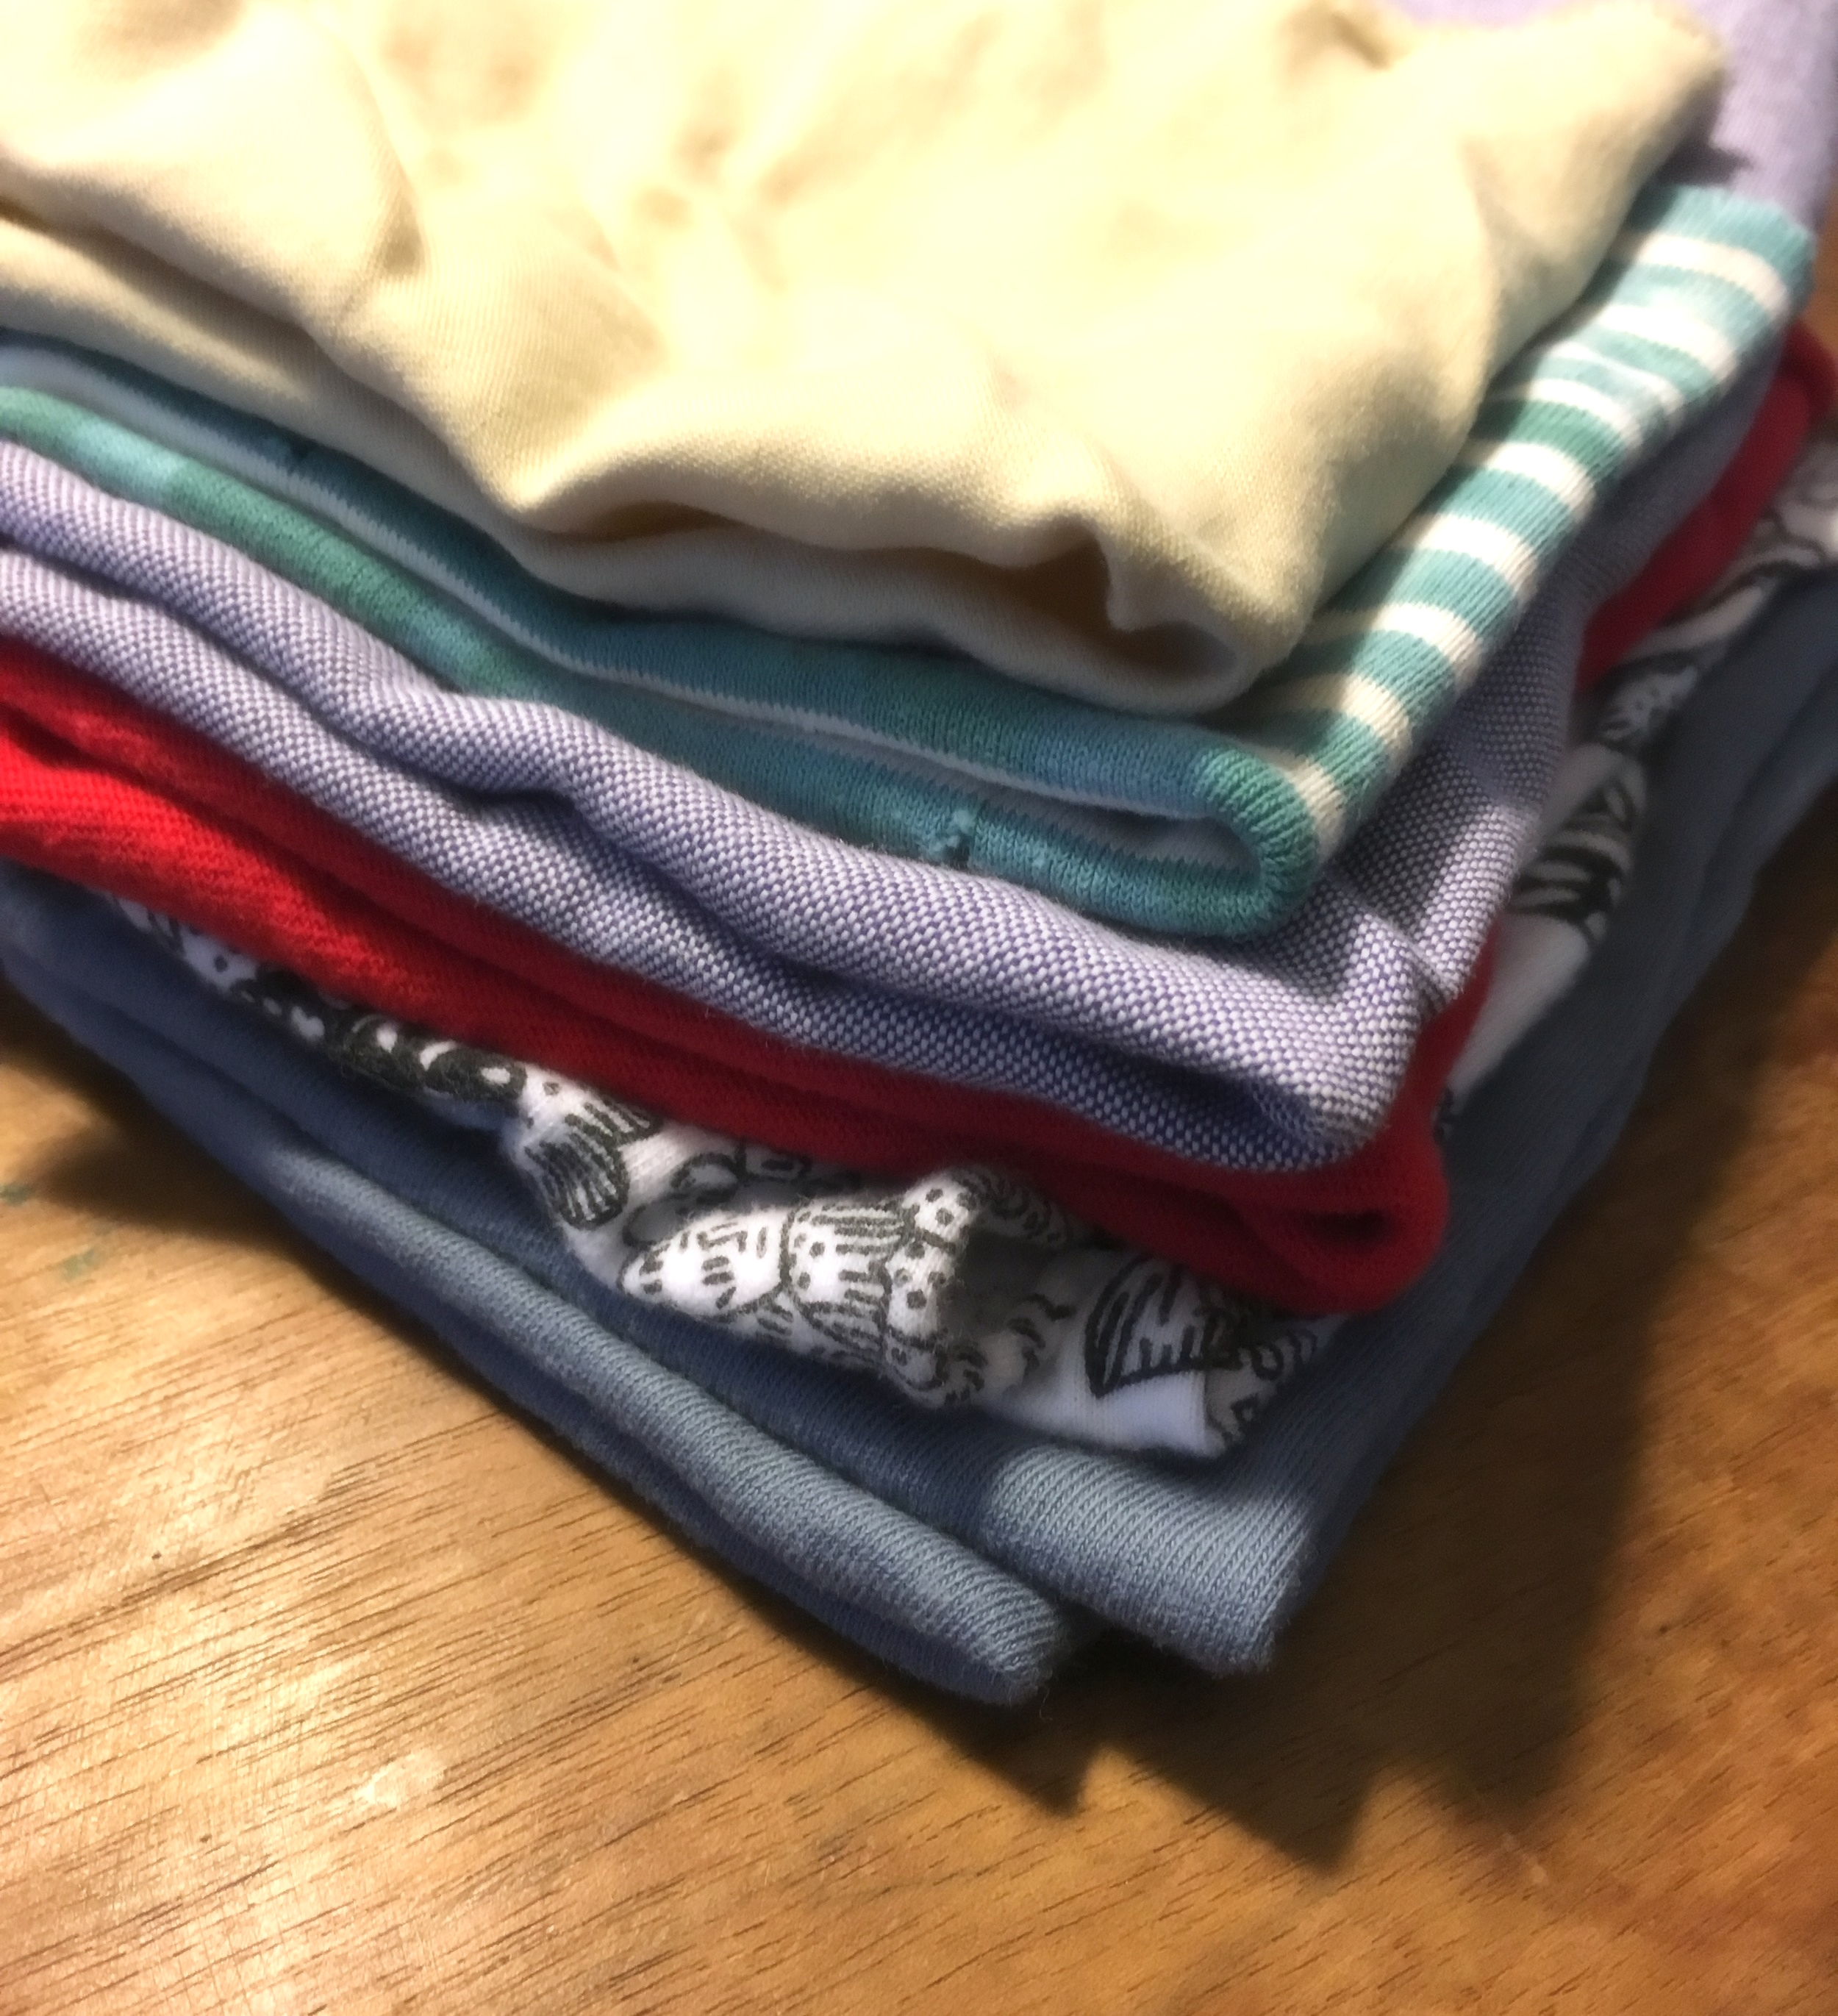 Homemade un-paper towels are a great way to re=purpose clothes!